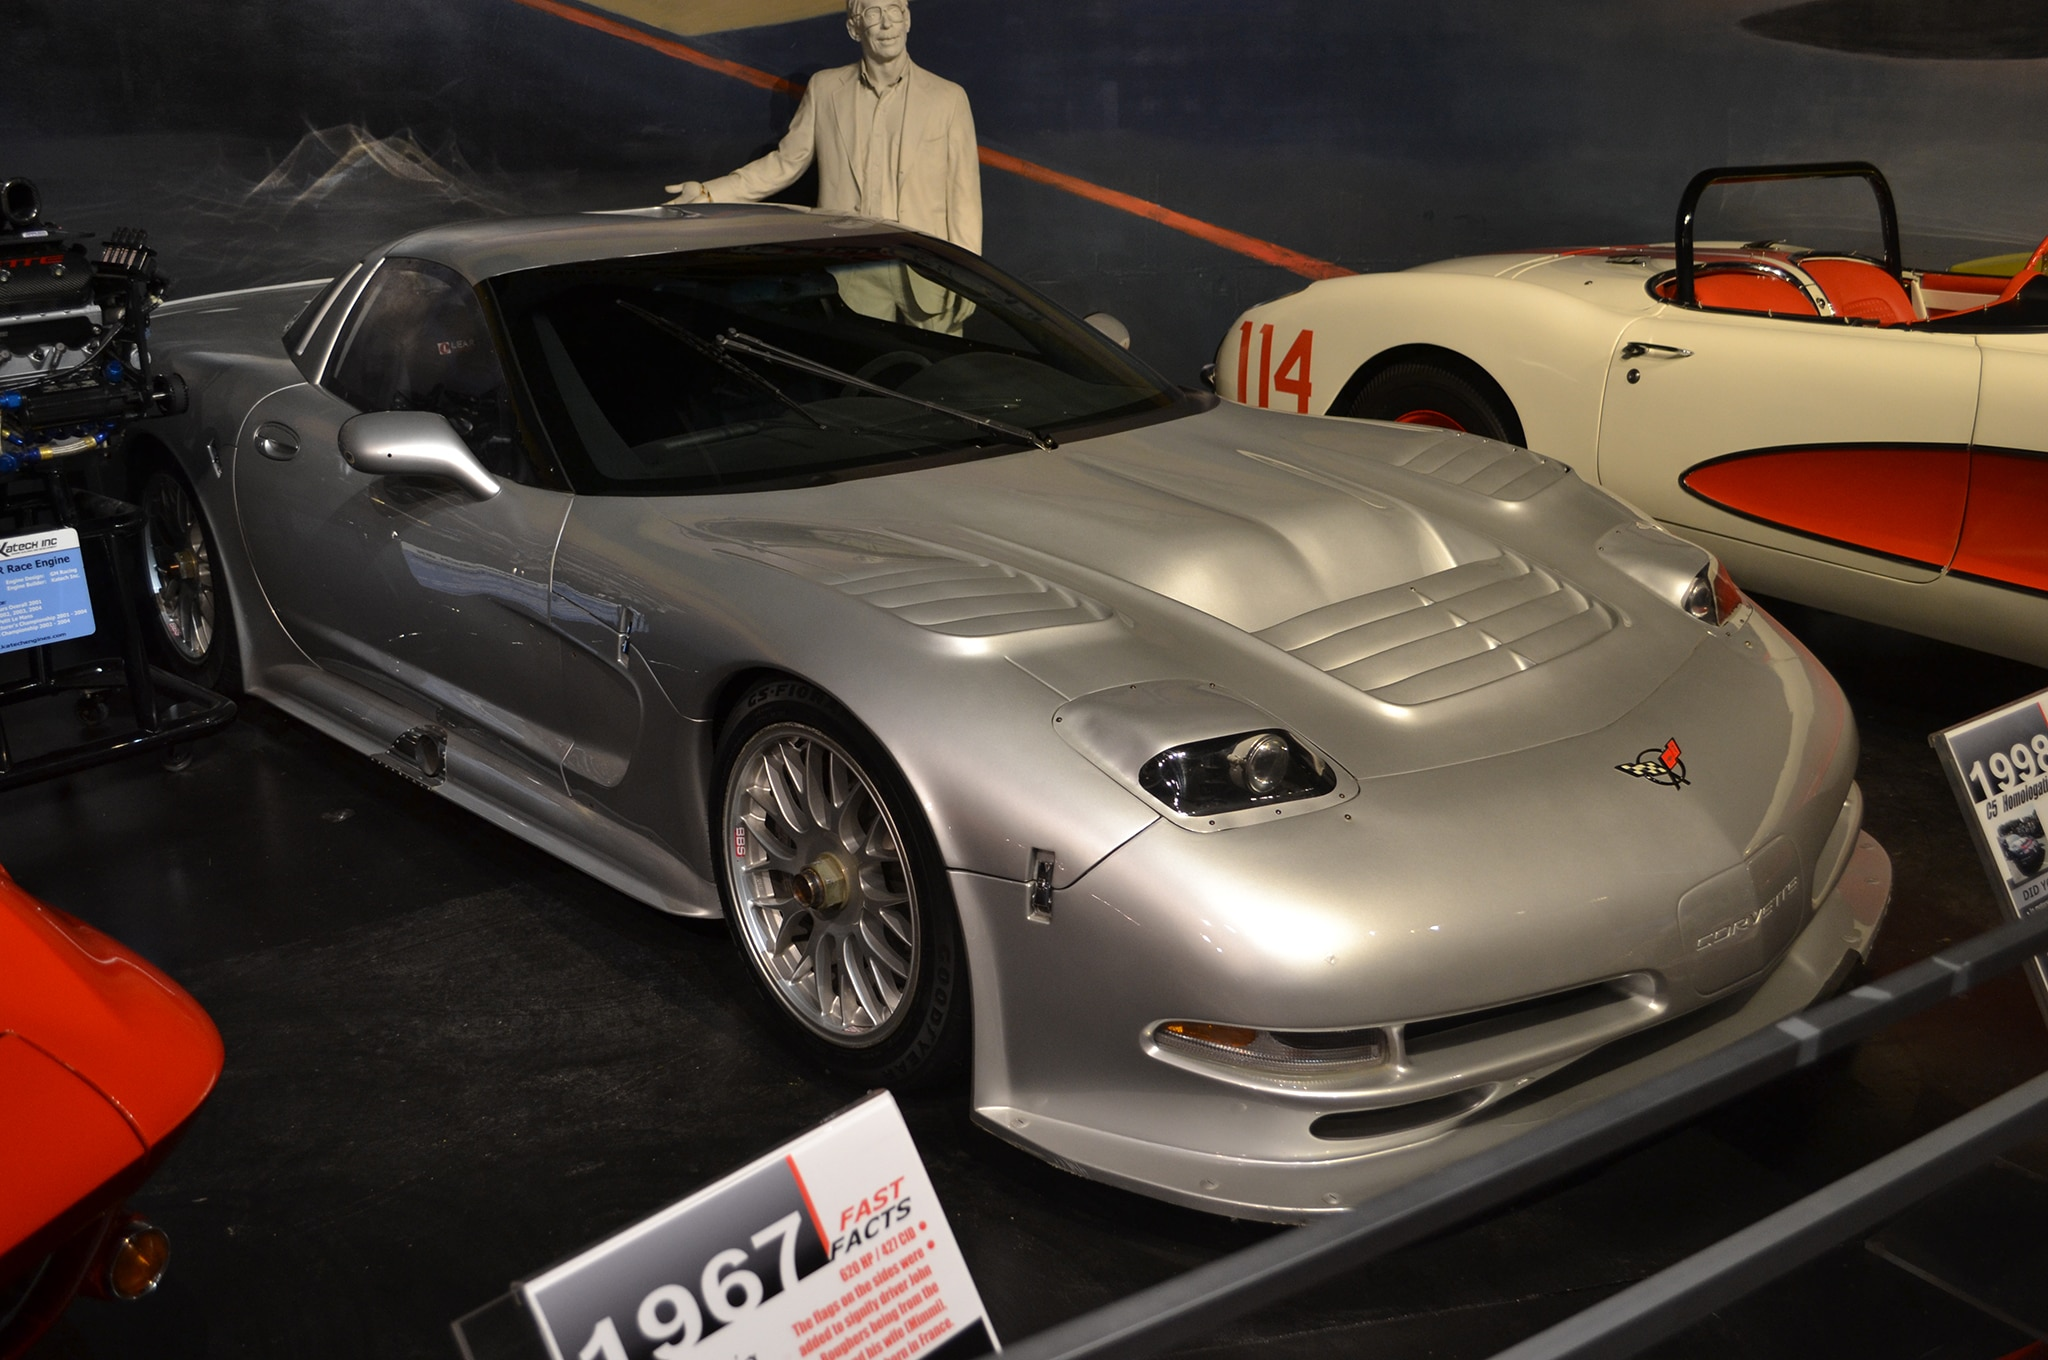 1998 Chevrolet C5 Corvette Homologation National Corvette Museum